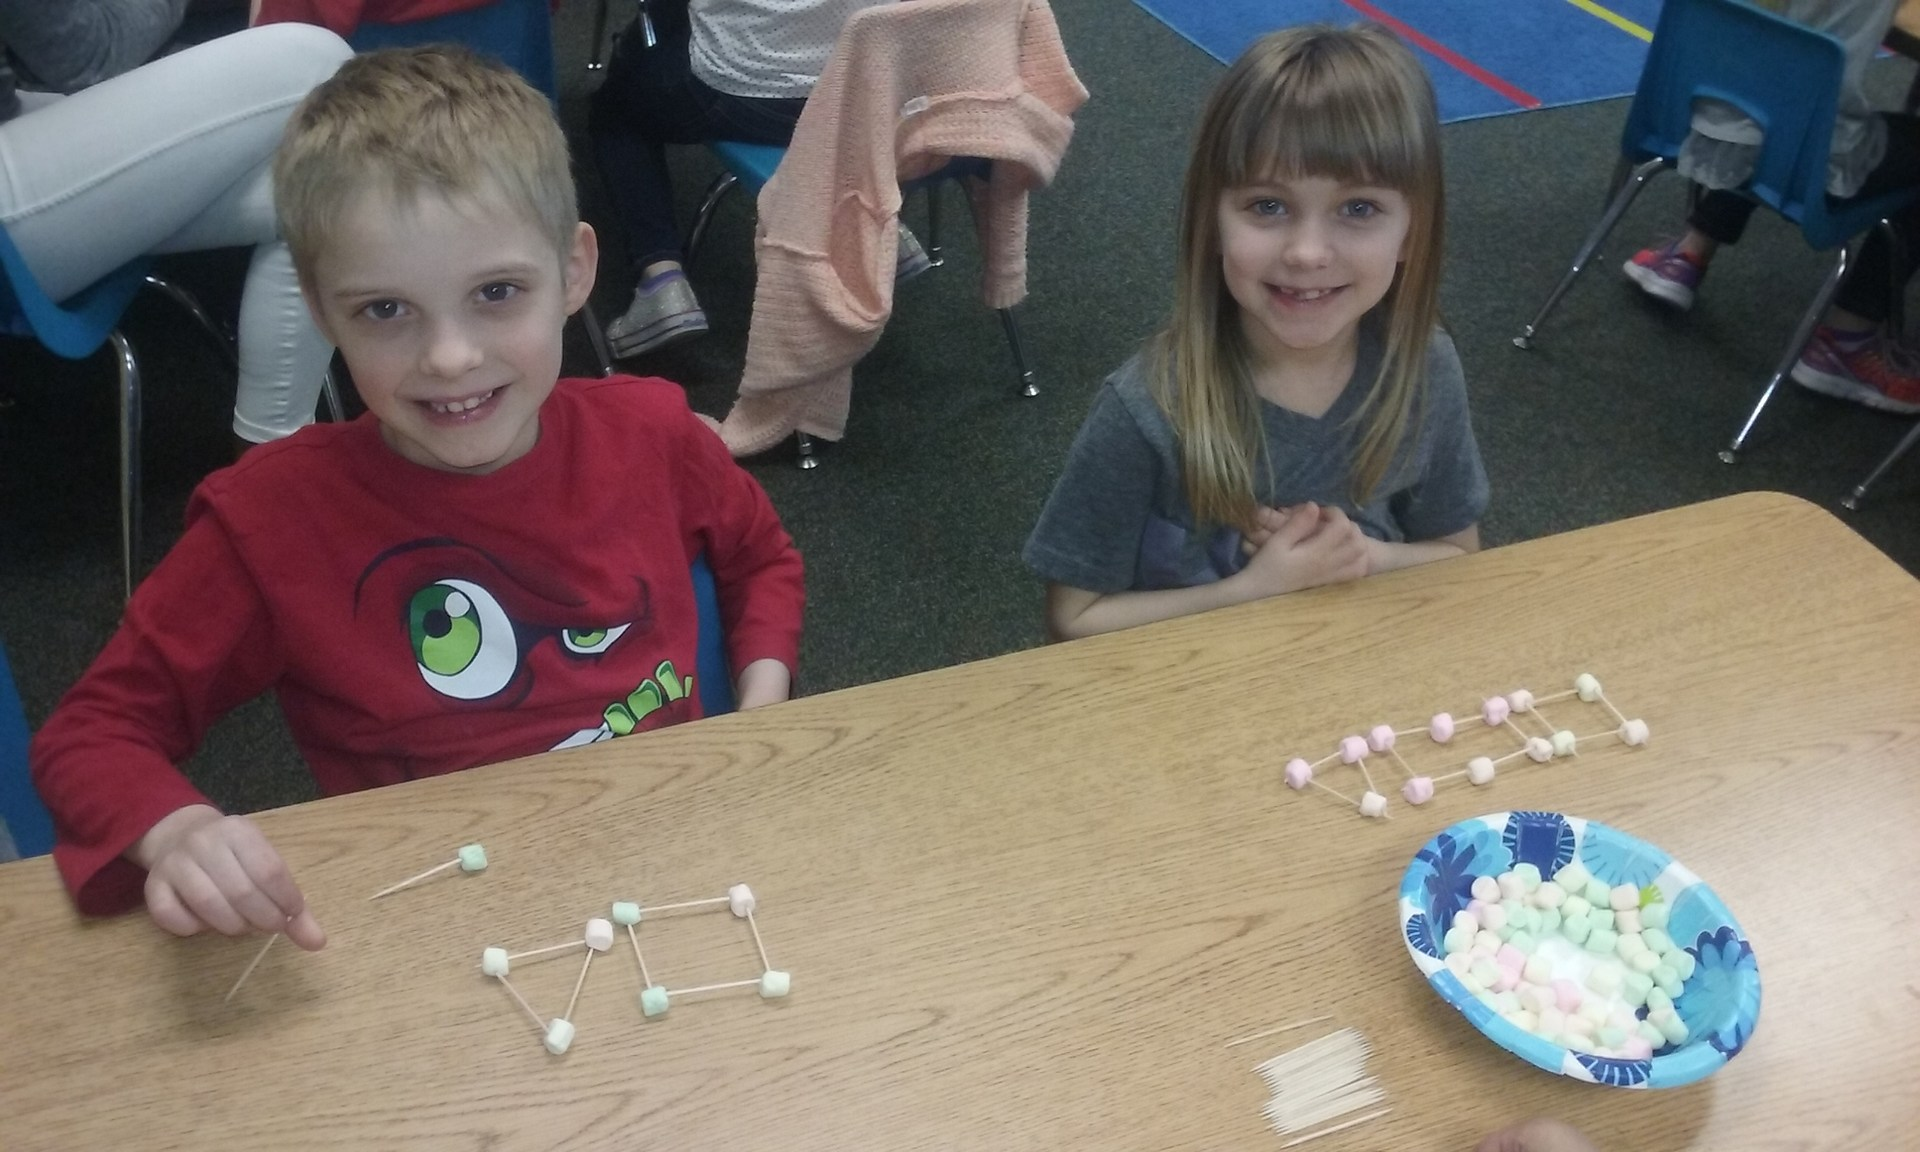 Two students build shapes with marshmallows and toothpicks